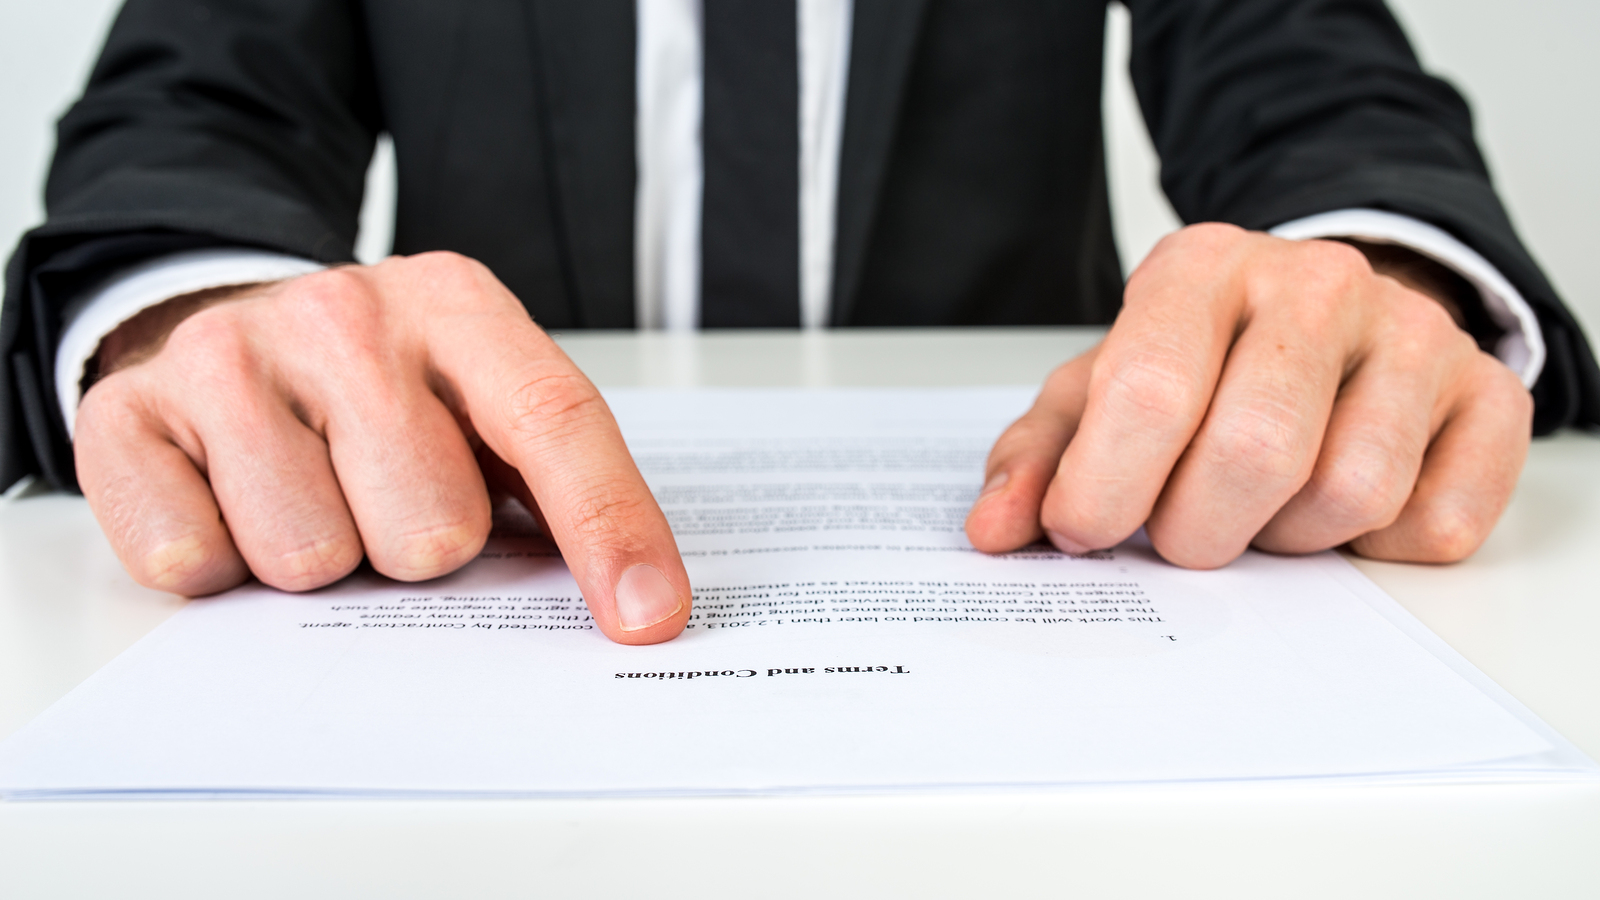 explaining terms and conditions of a real estate contract